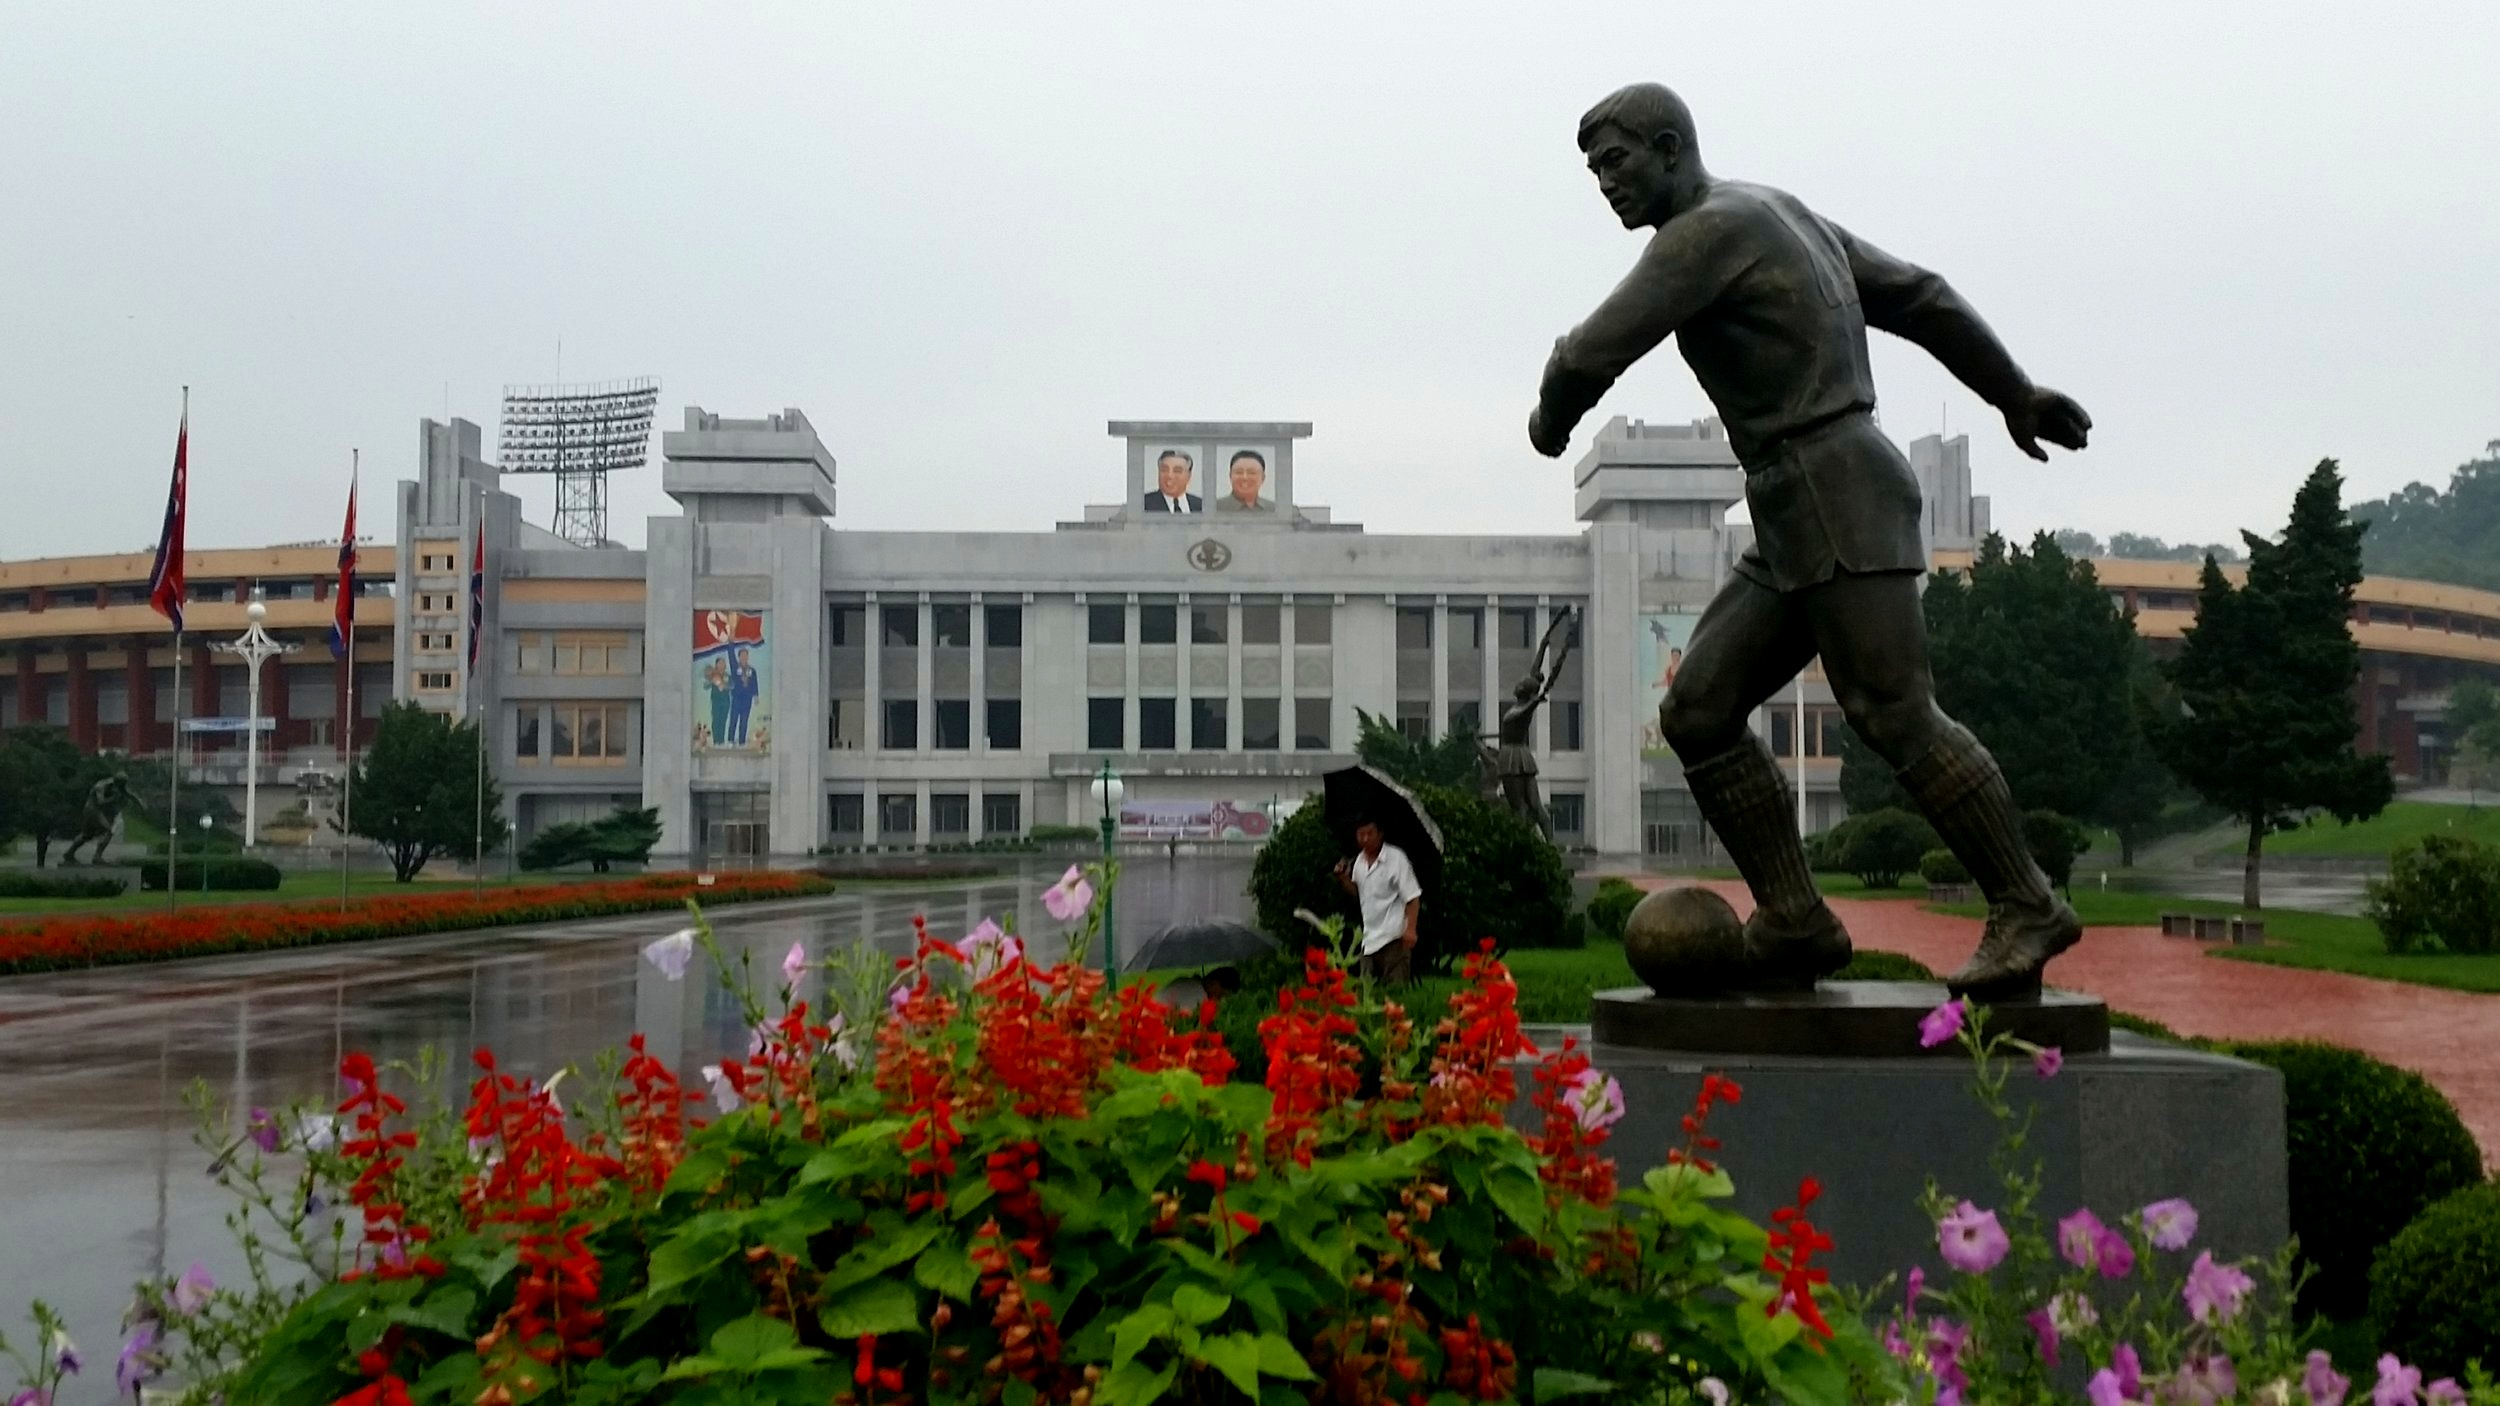 North Korea's sporting history is rich. It has, and has always had, the best national football team in the world. At least thats what people here probably think.